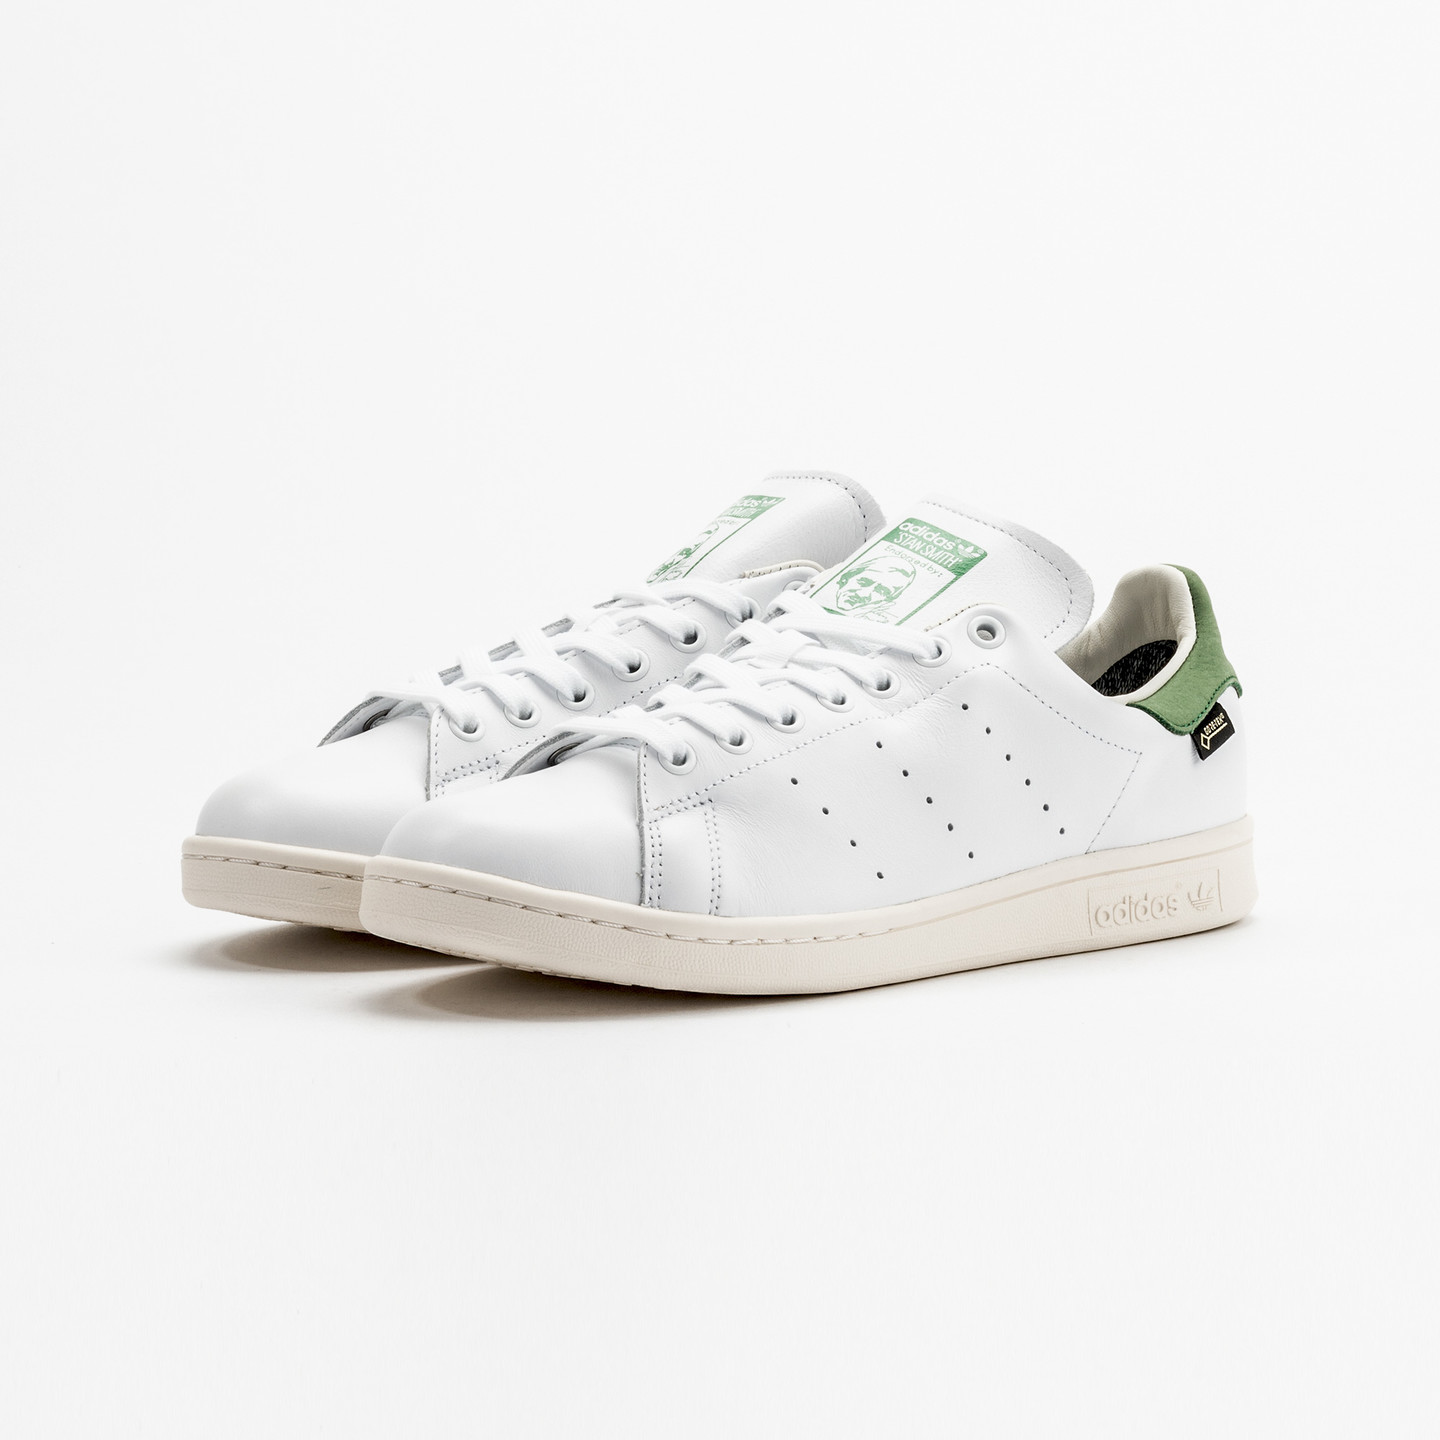 Adidas Stan Smith GTX Running White / Green S80049